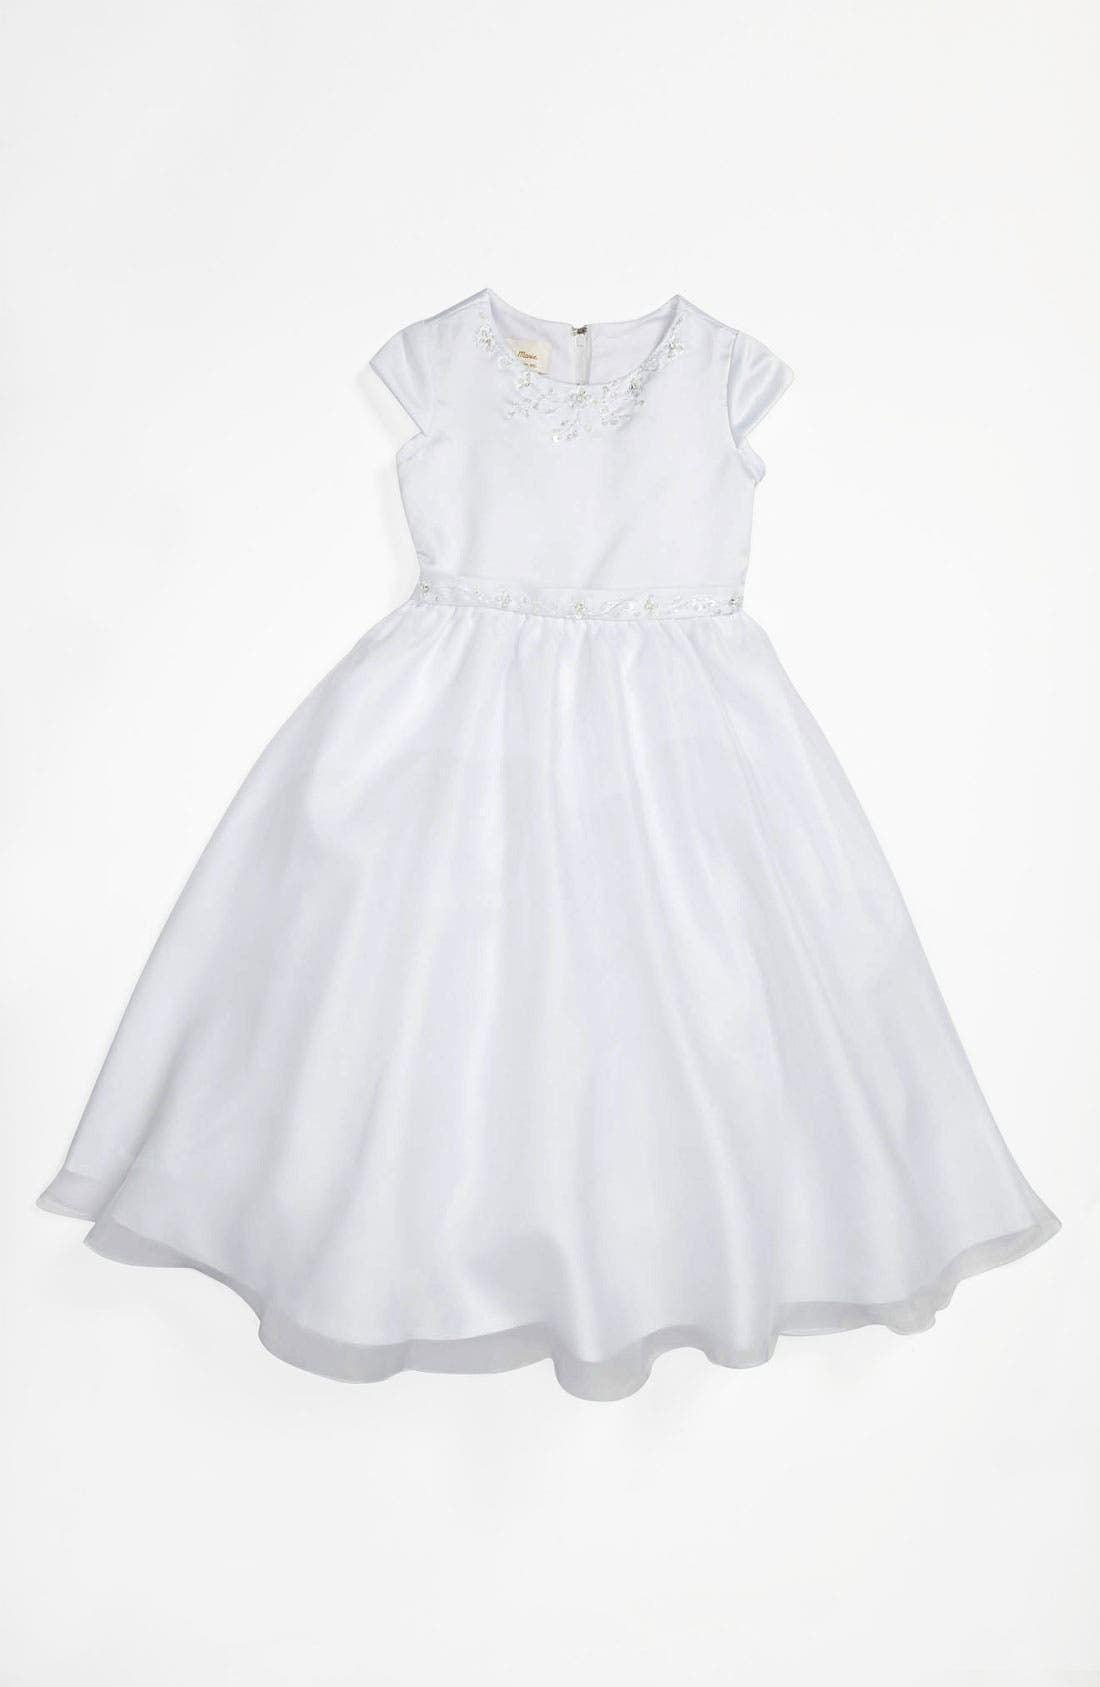 Main Image - Lauren Marie Beaded Dress (Little Girls & Big Girls)